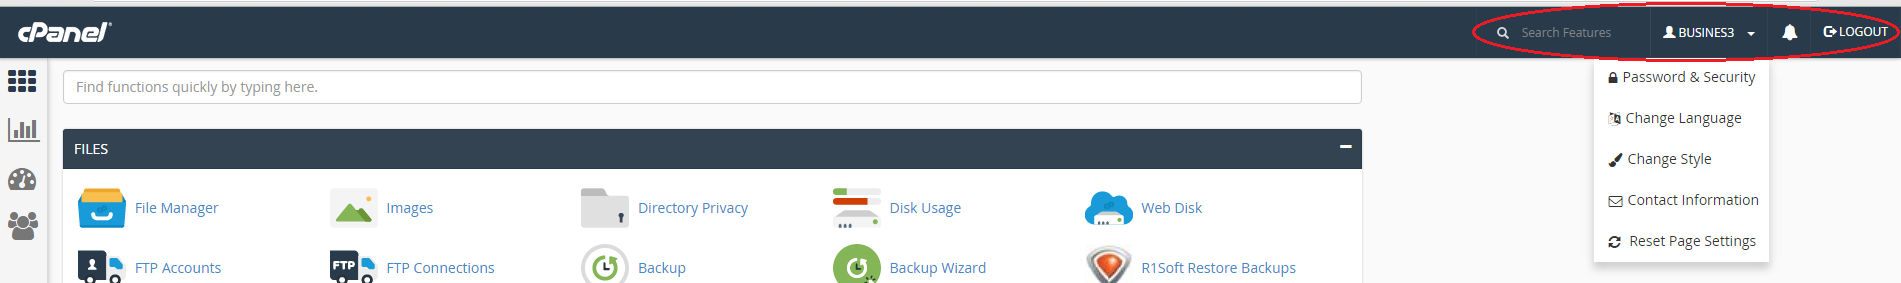 cPanel header options